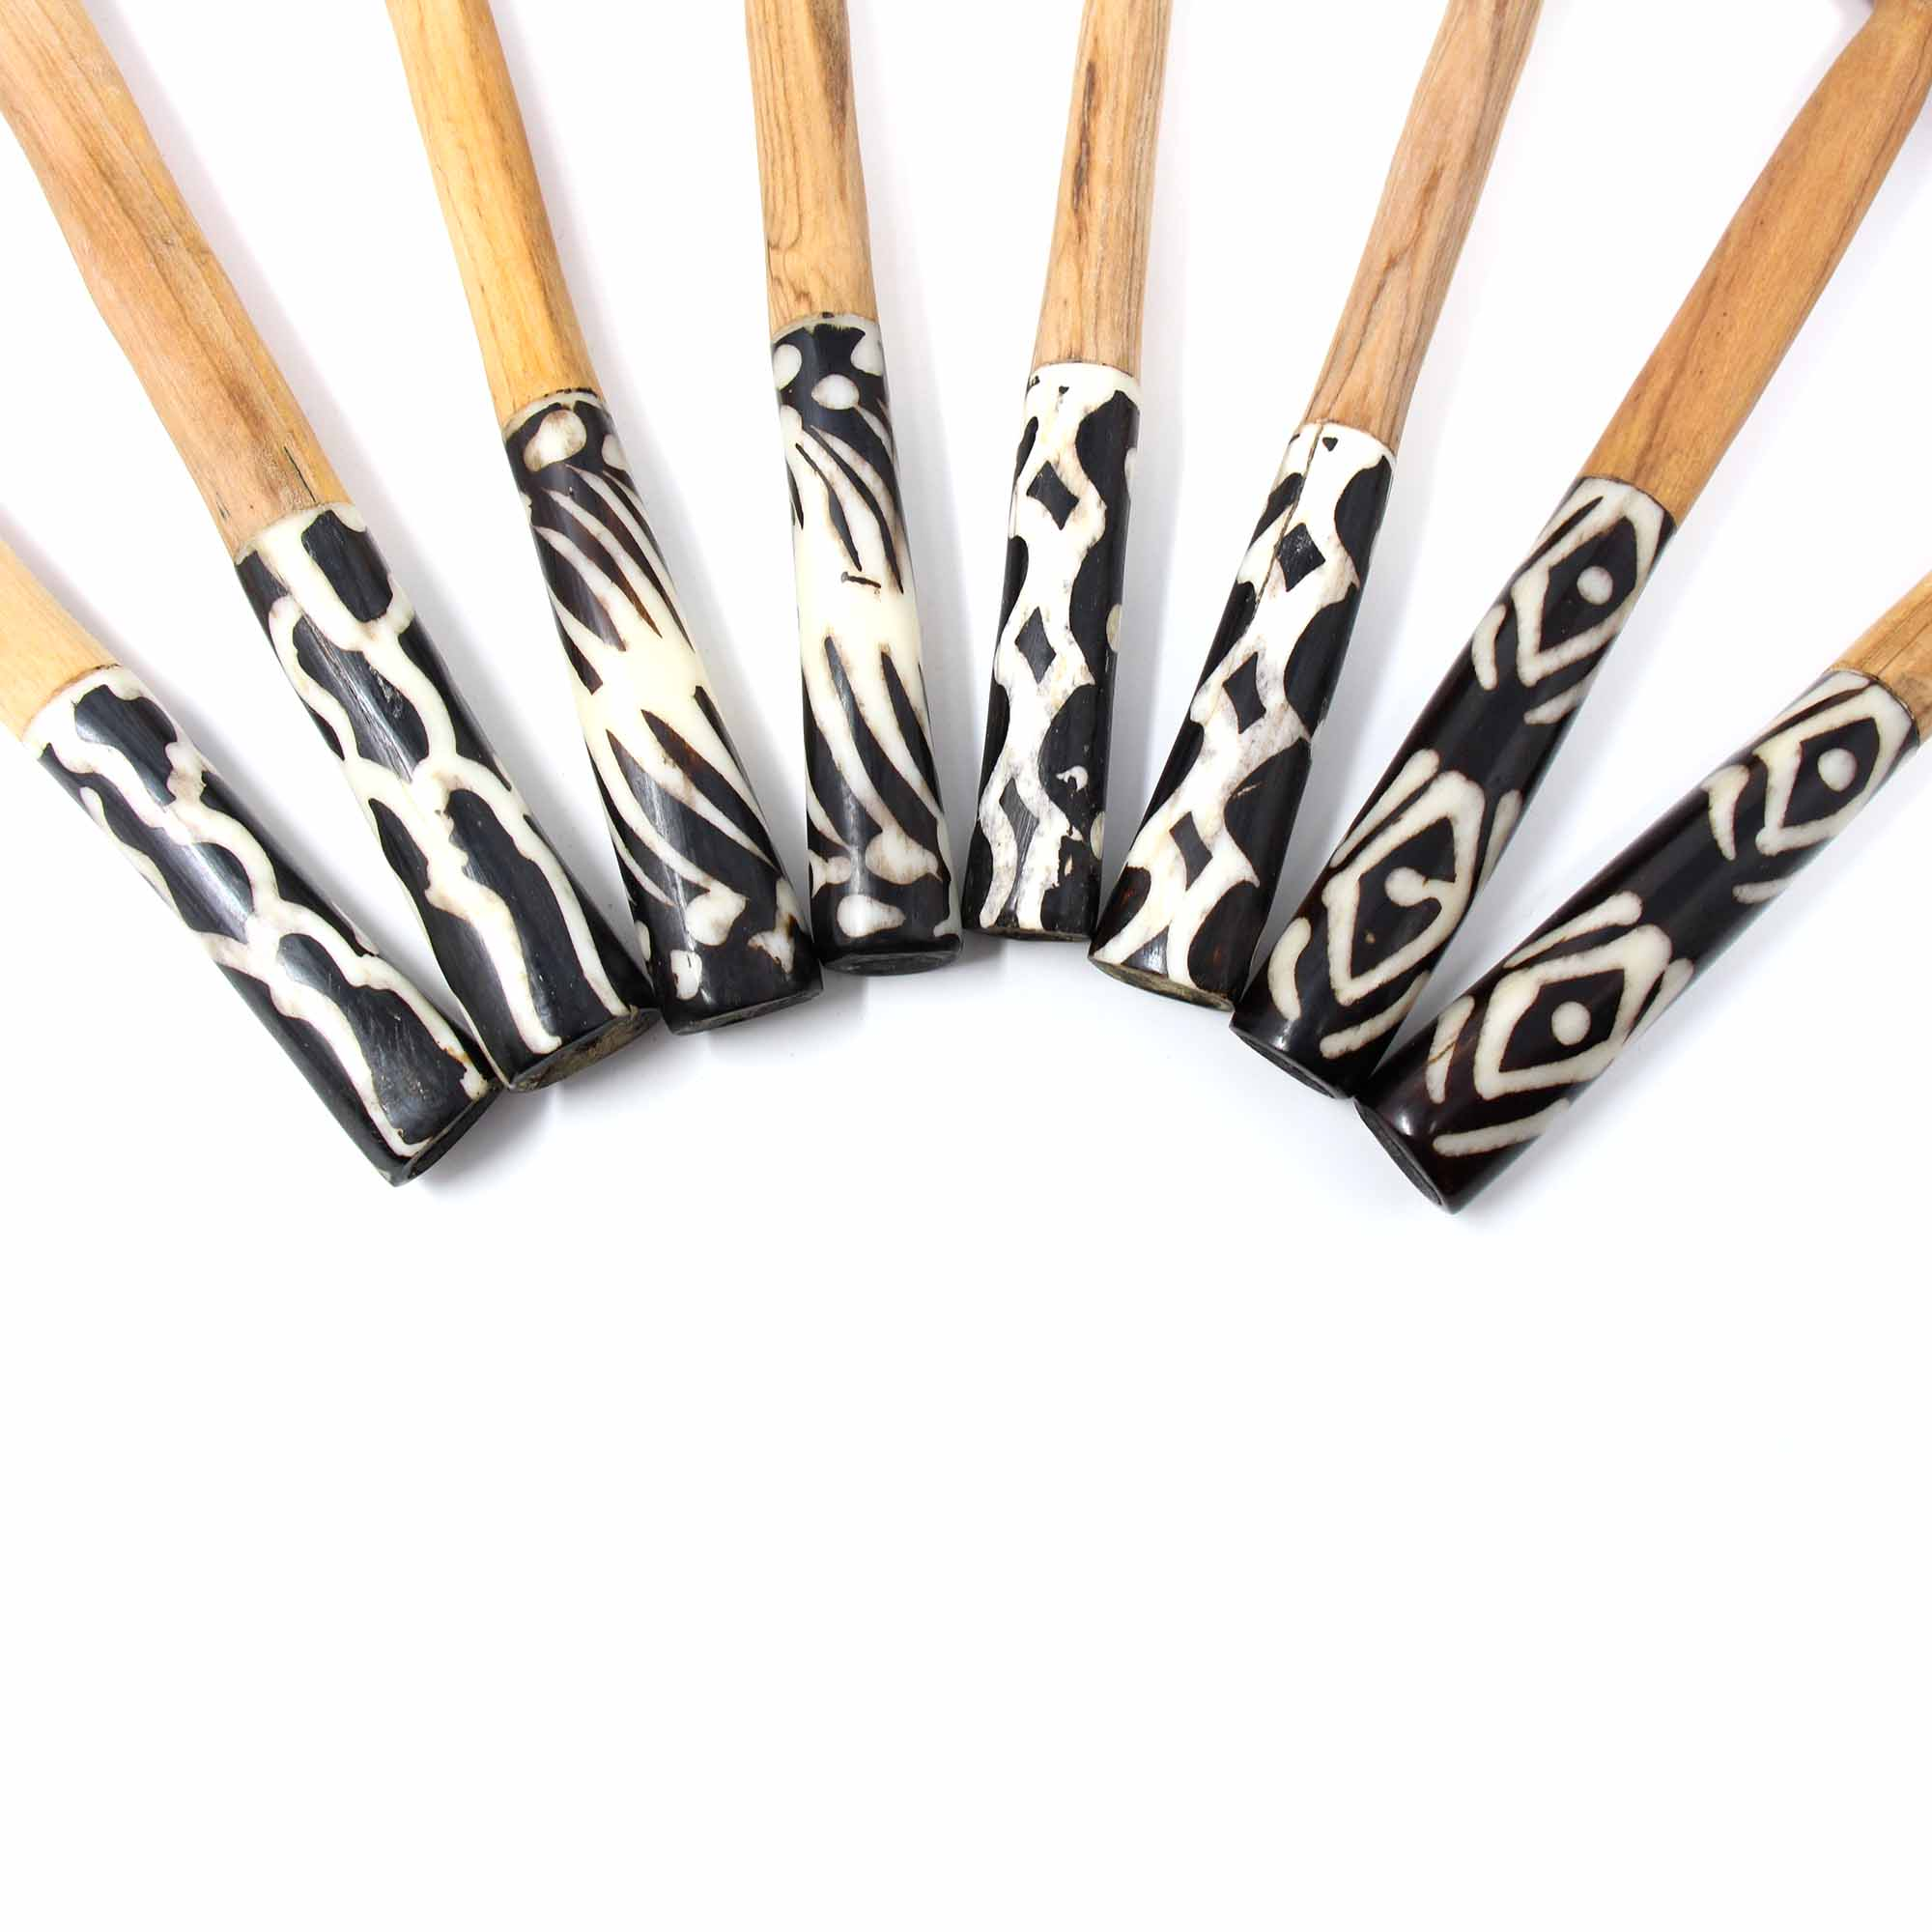 Olive Wood Serving Set with Batik Bone Handles, Assorted Designs